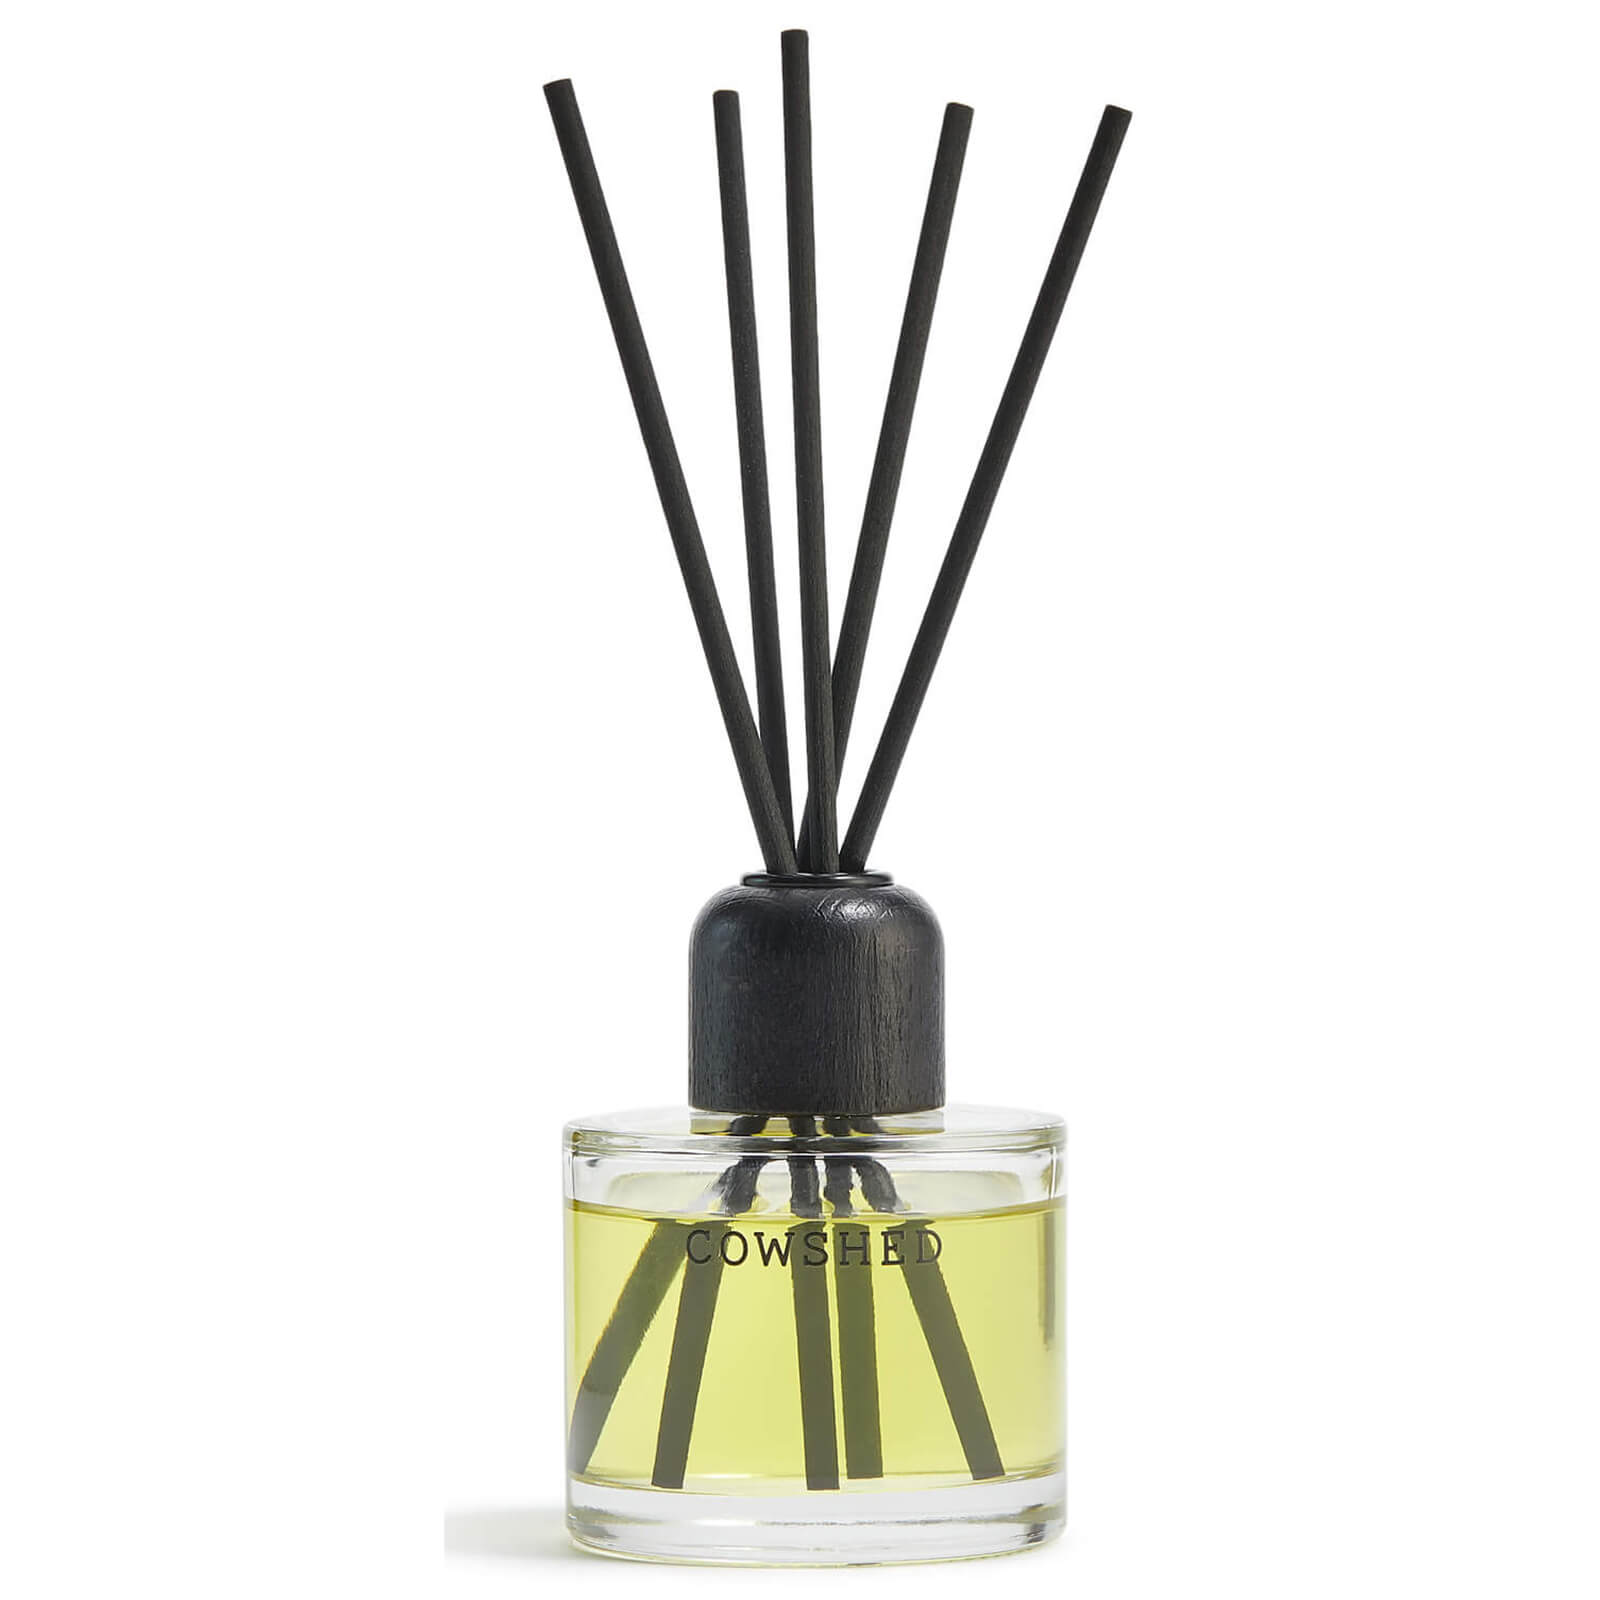 Cowshed ACTIVE Diffuser 100ml